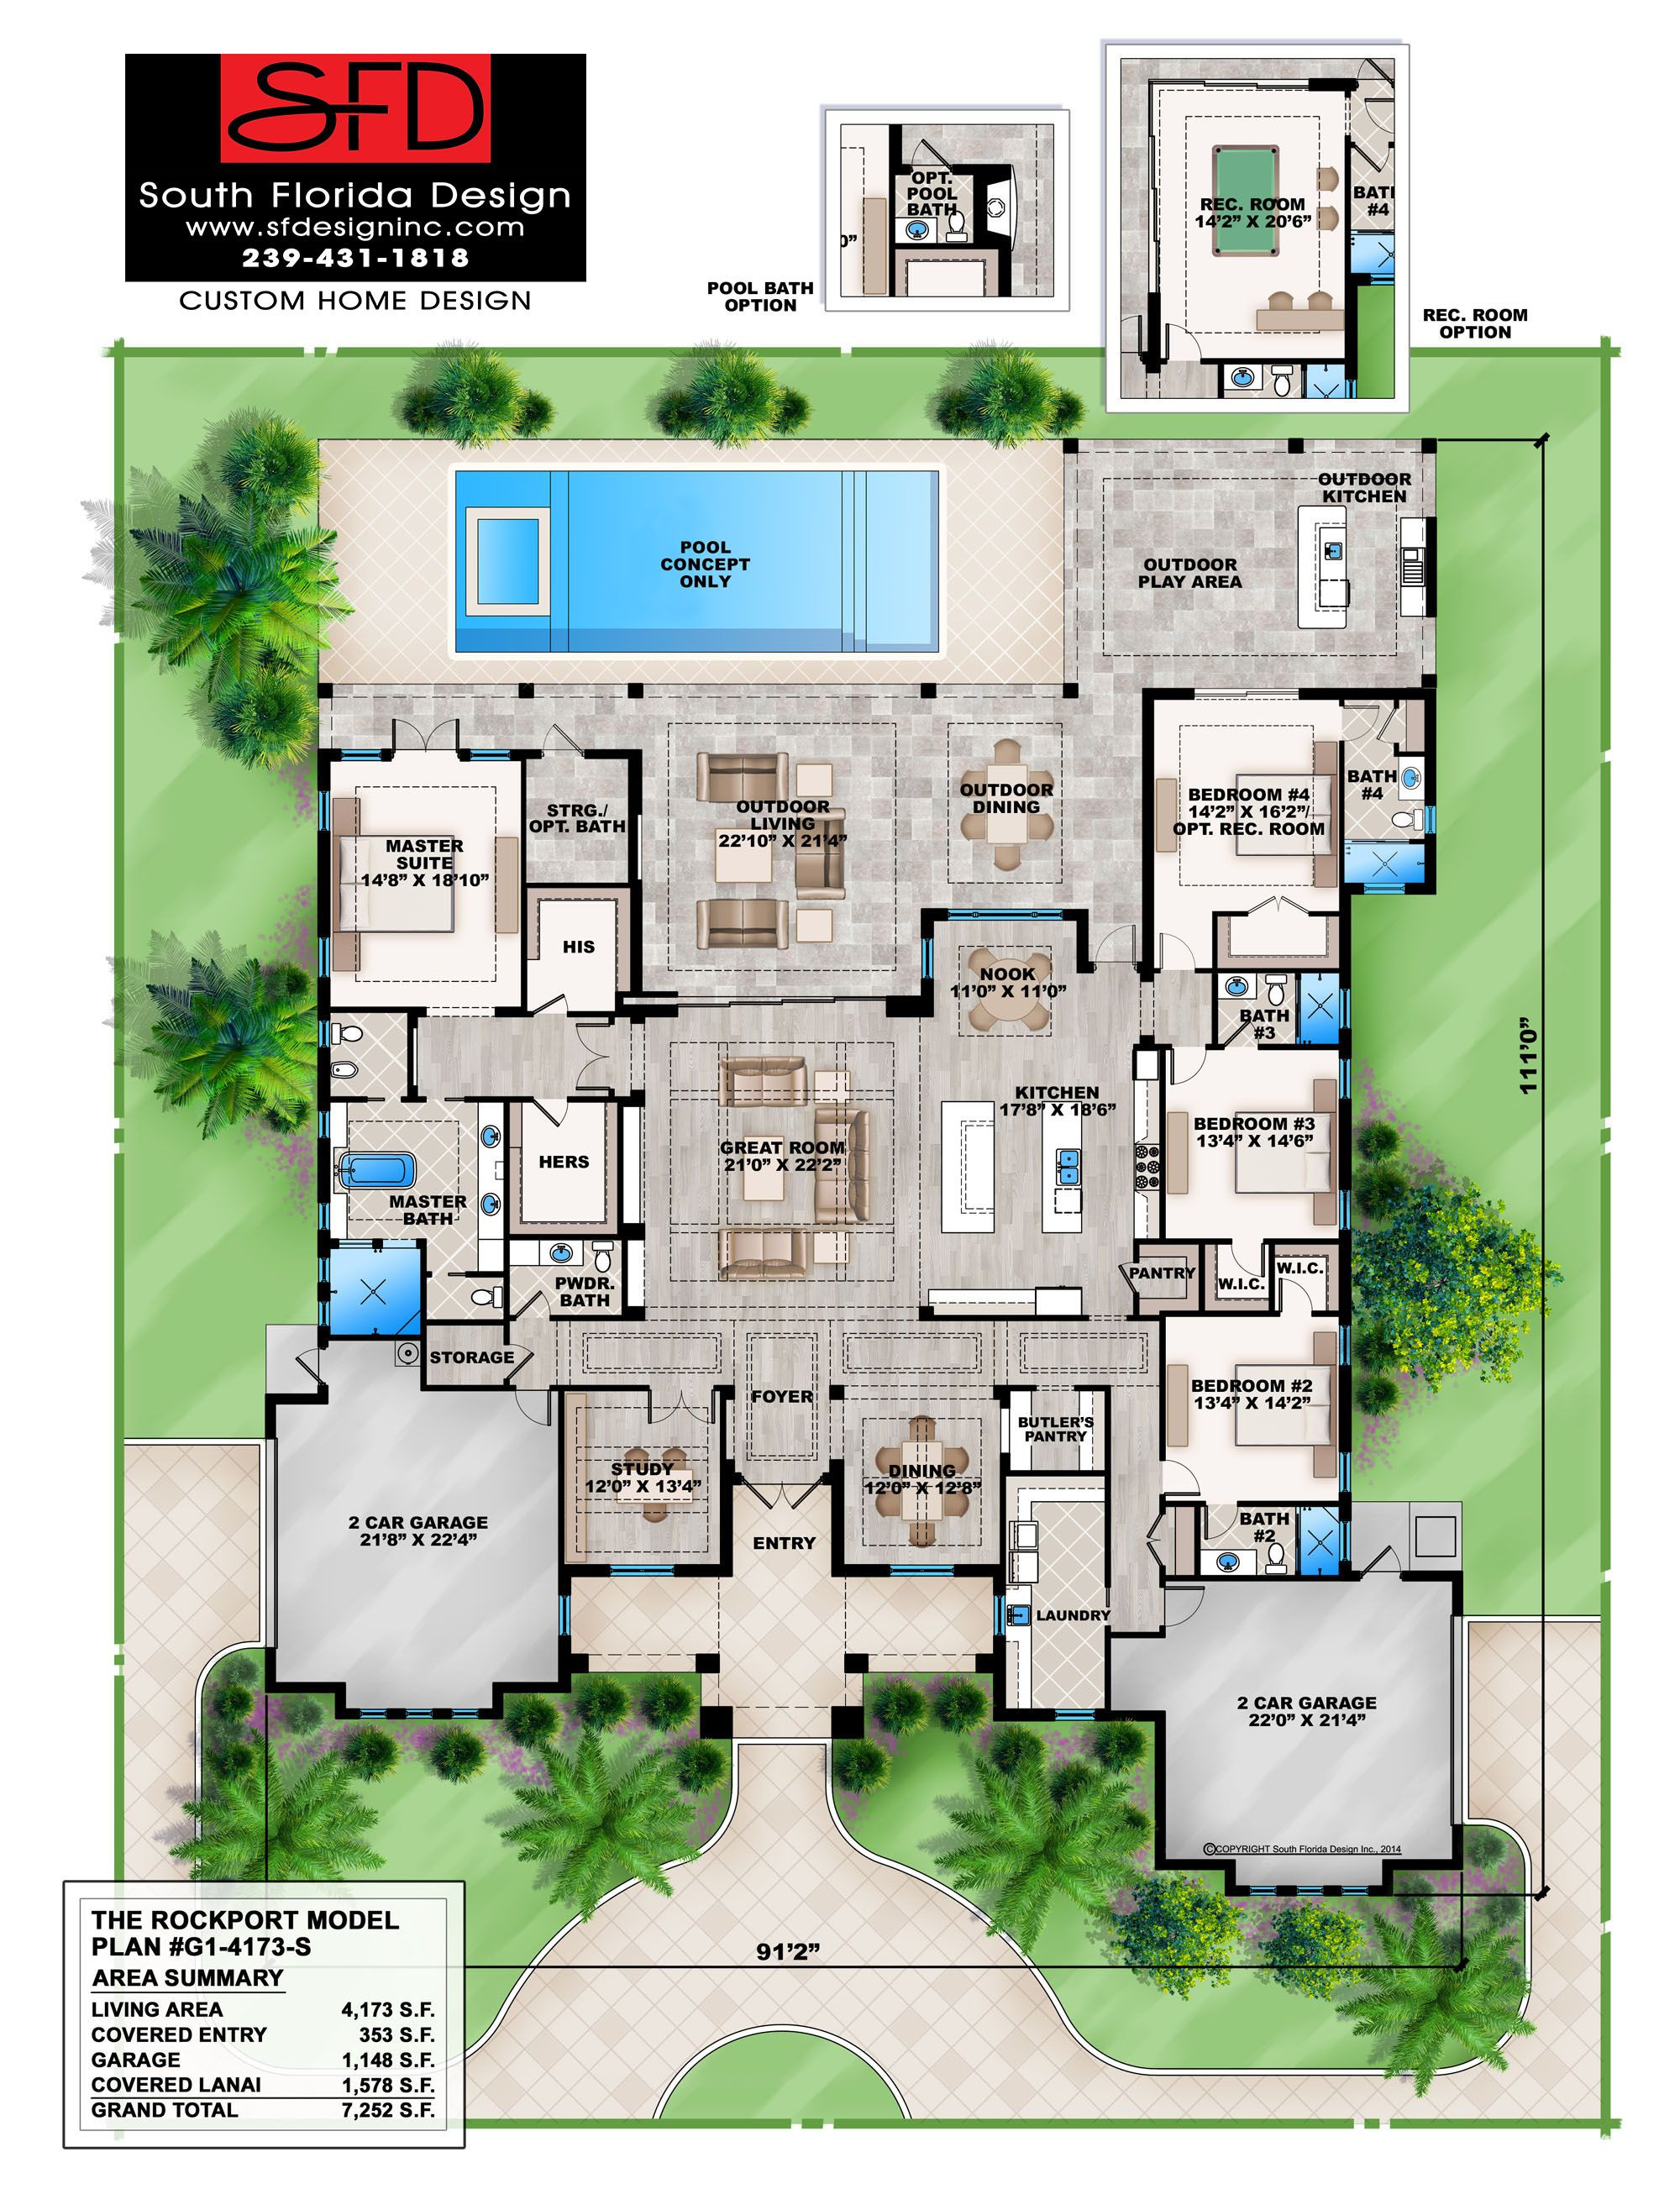 Contemporary Mansion Floor Plans Awesome Contemporary 1 Floor Home Design south Florida Design with